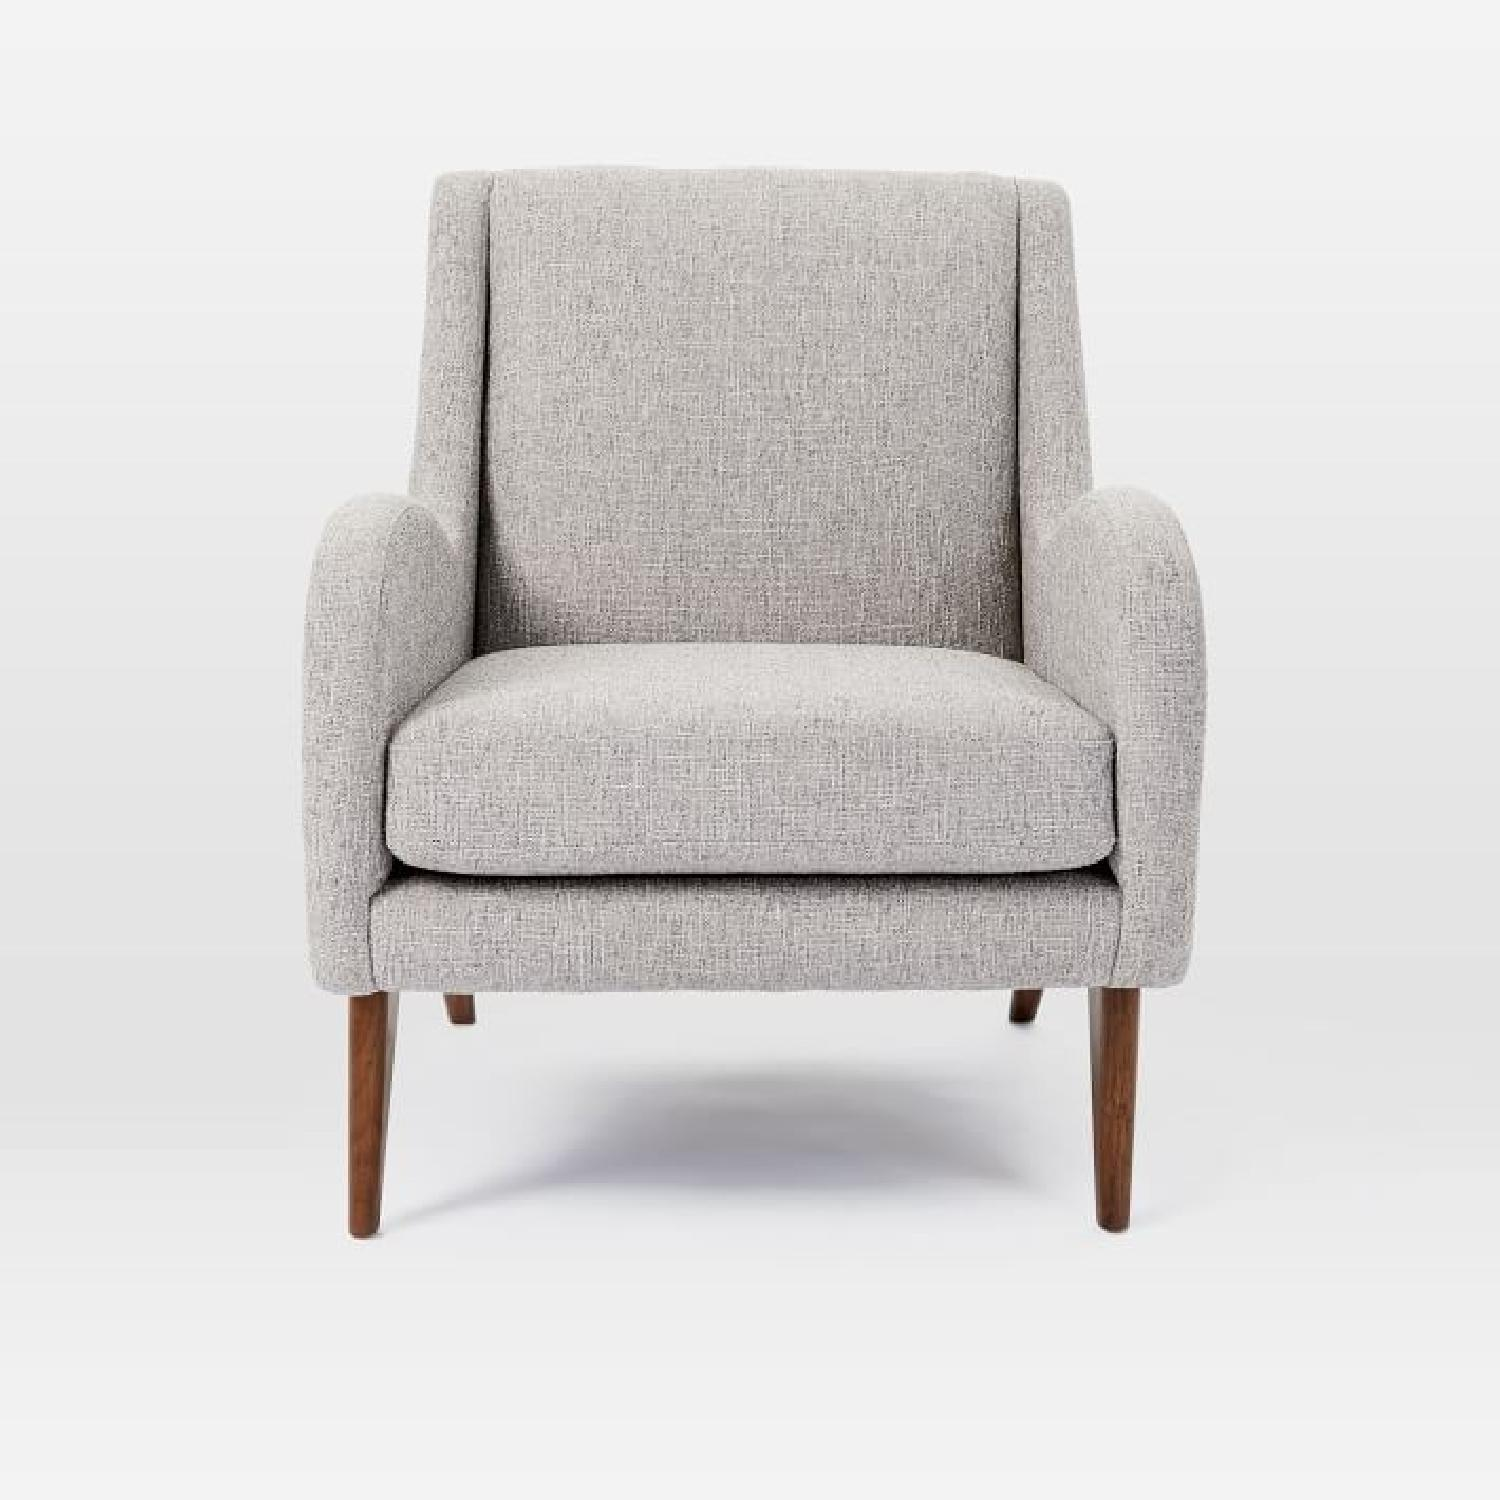 West Elm Sebastian Chair in Feather Gray - image-1